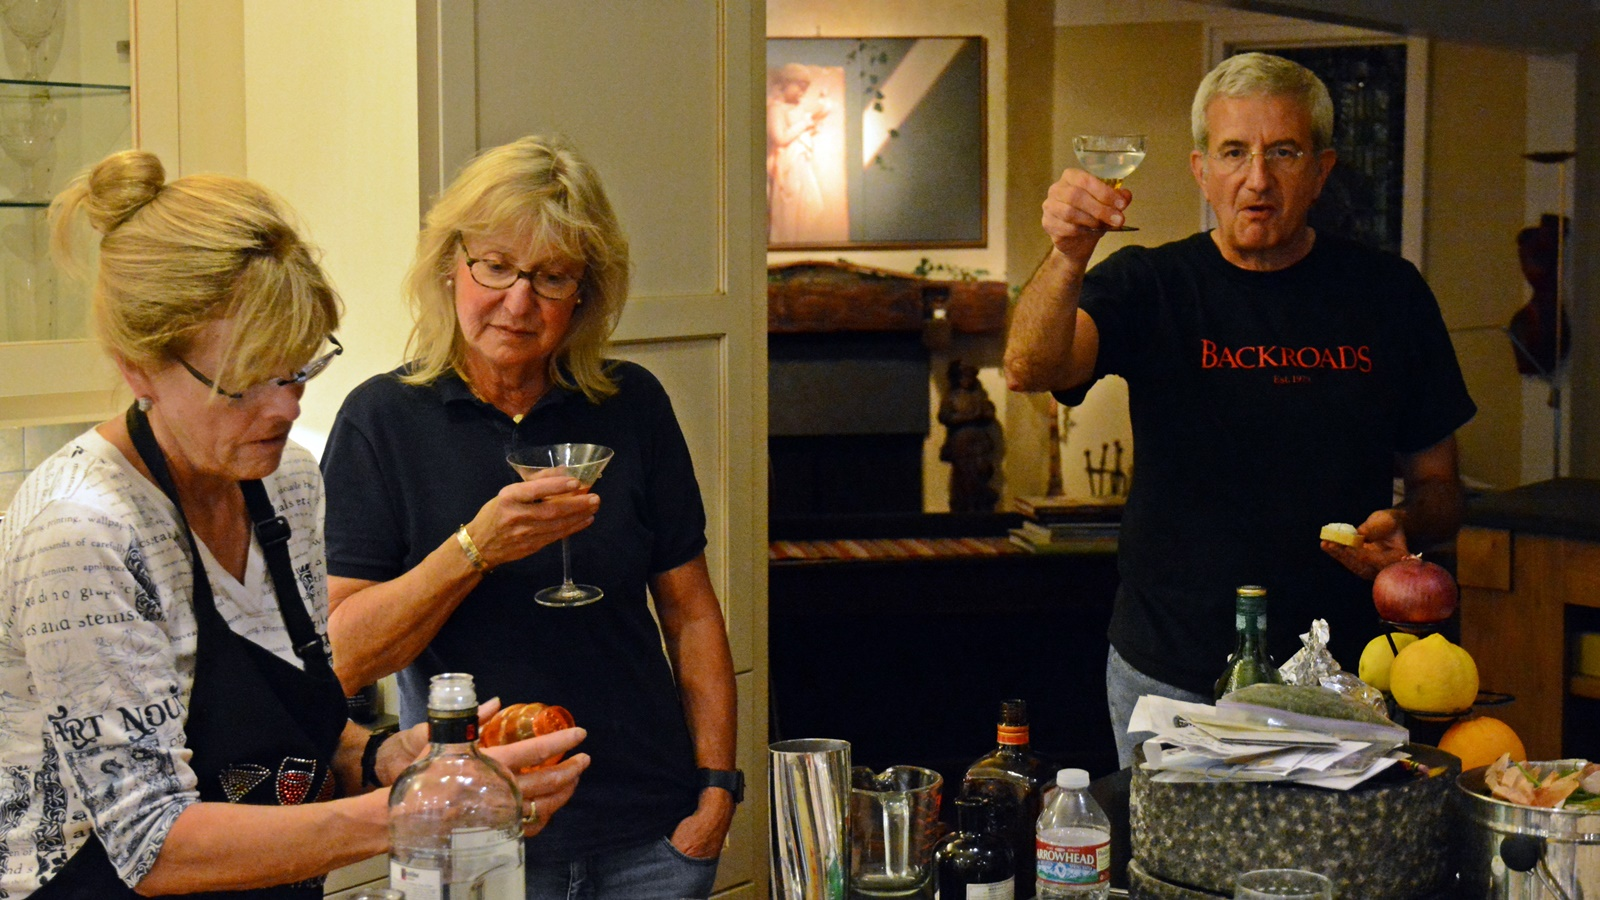 1 Steve Rossi toasting while Donna is mixing and Jetti Guenthard watching